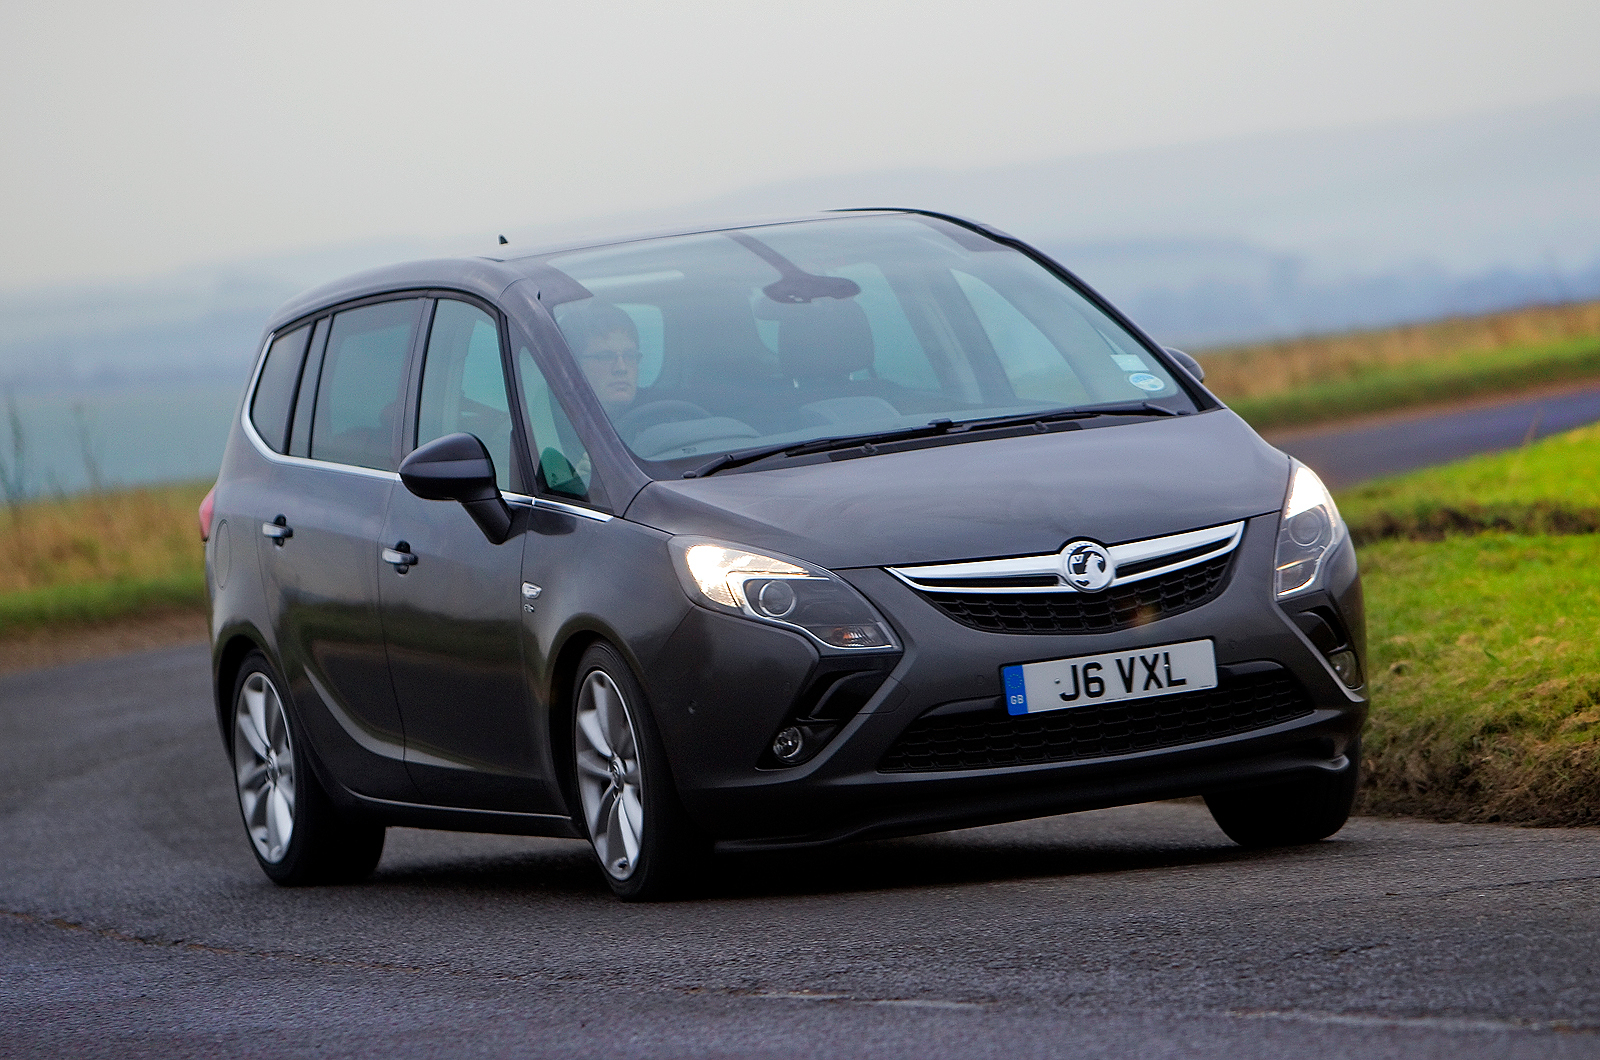 vauxhall zafira tourer review design autocar. Black Bedroom Furniture Sets. Home Design Ideas